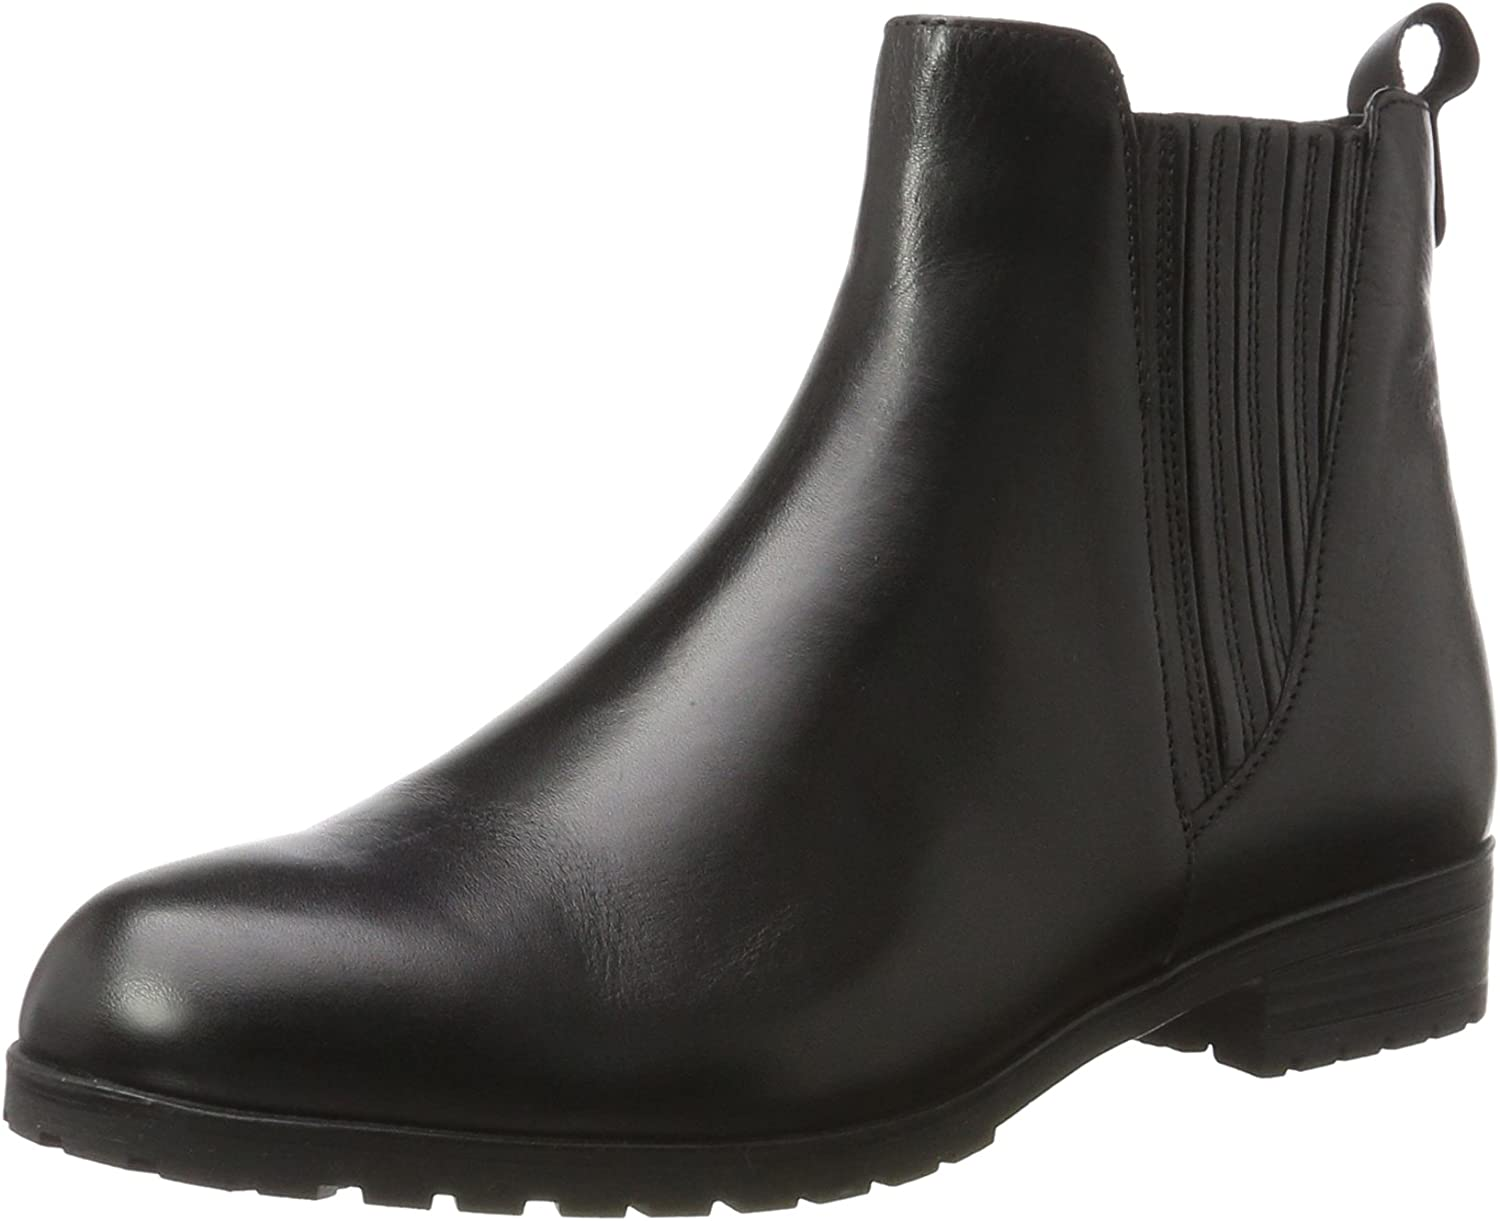 Caprice 25352 Womens Boots Black